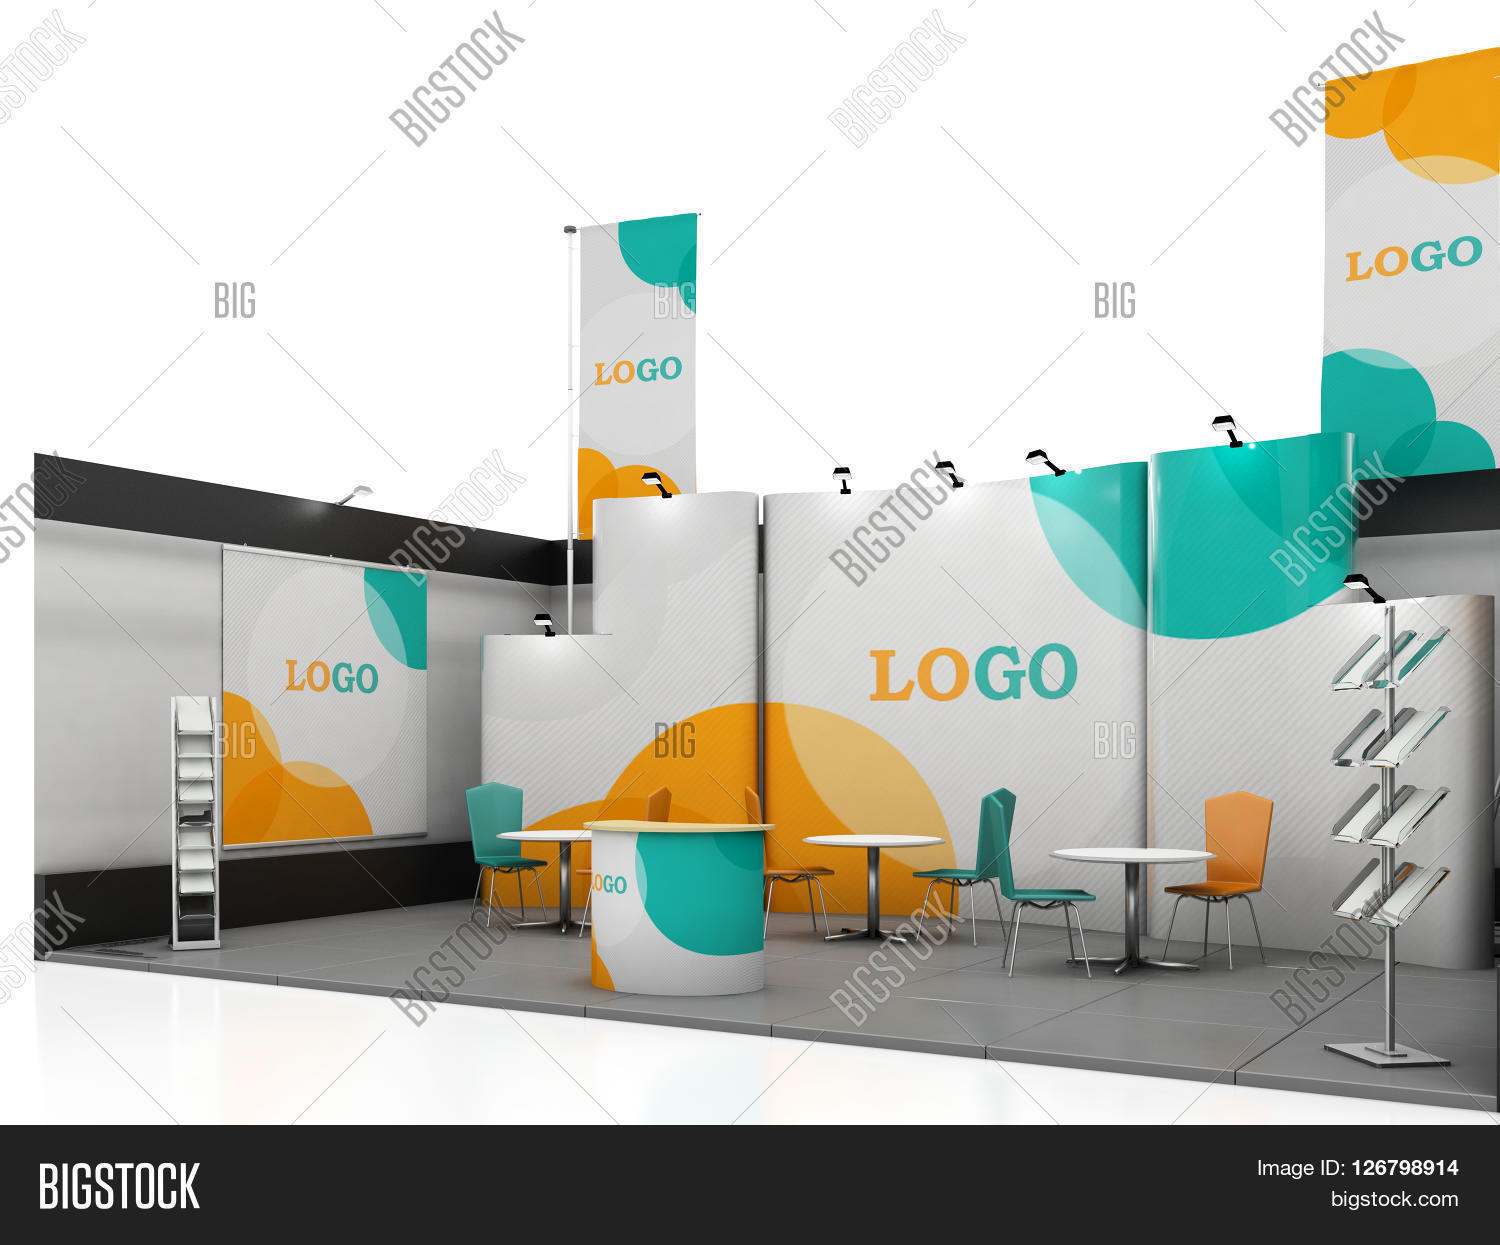 Big Exhibition Stand Design : Blank creative exhibition stand image photo bigstock